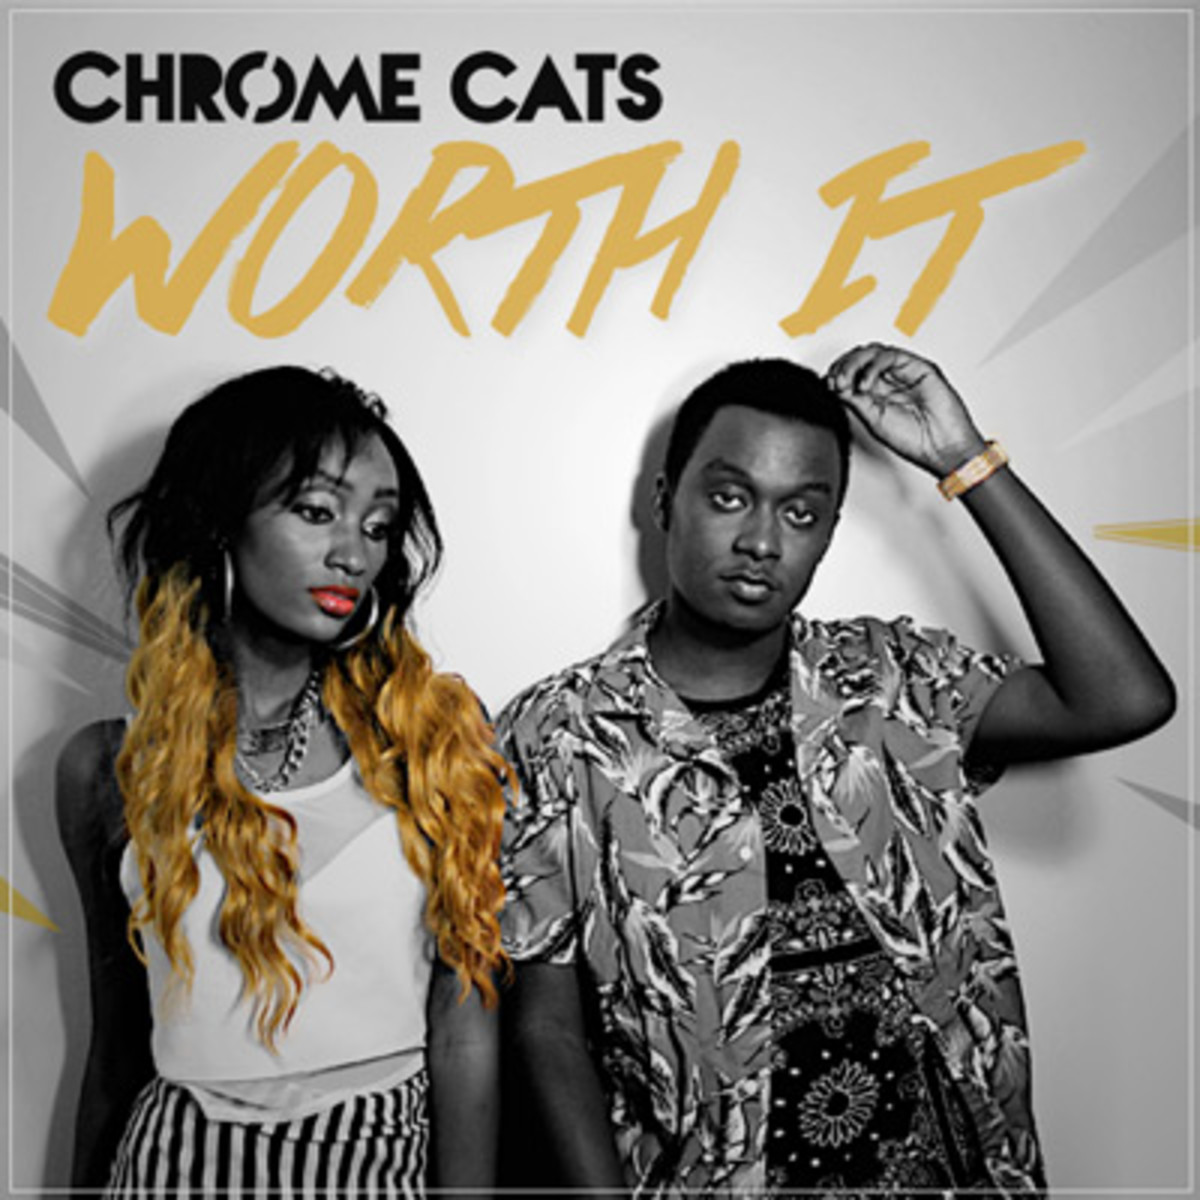 chromecats-worthit.jpg